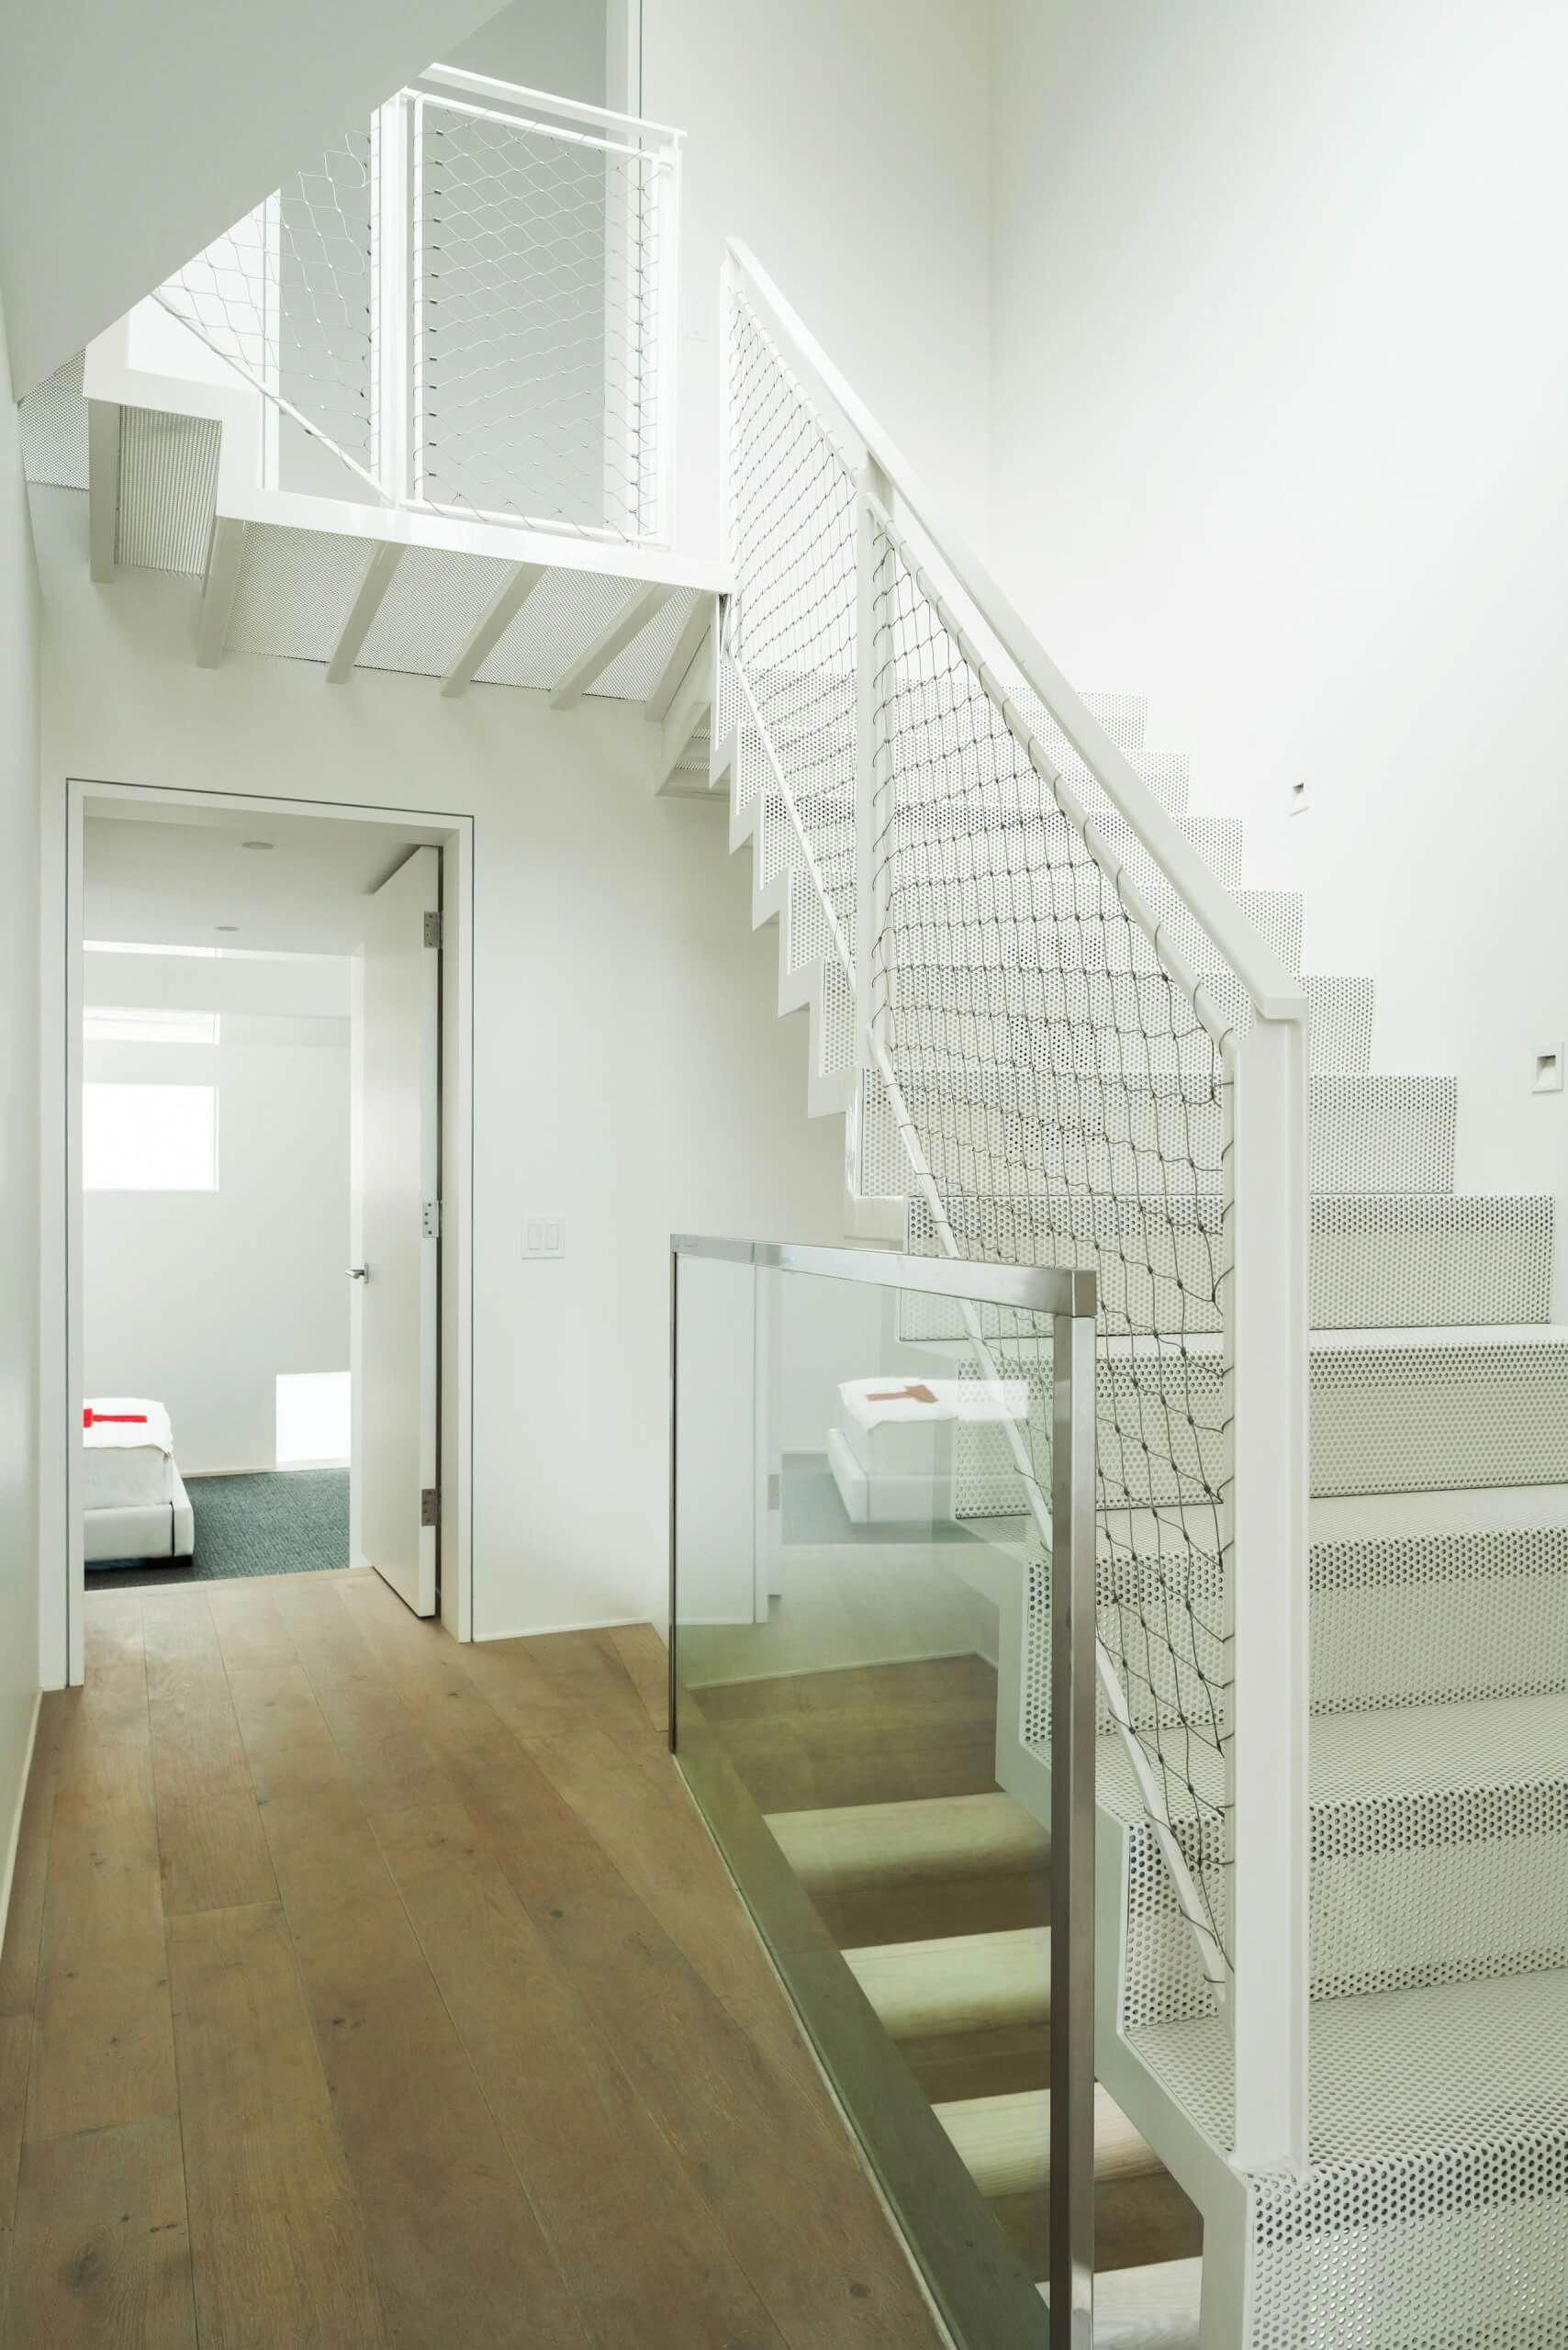 Contemporary Beach House Minimalist White Hallway With Glass Railing And Open Floating Staircase Nonag Contemporary Beach House Beach House Decor Home Decor